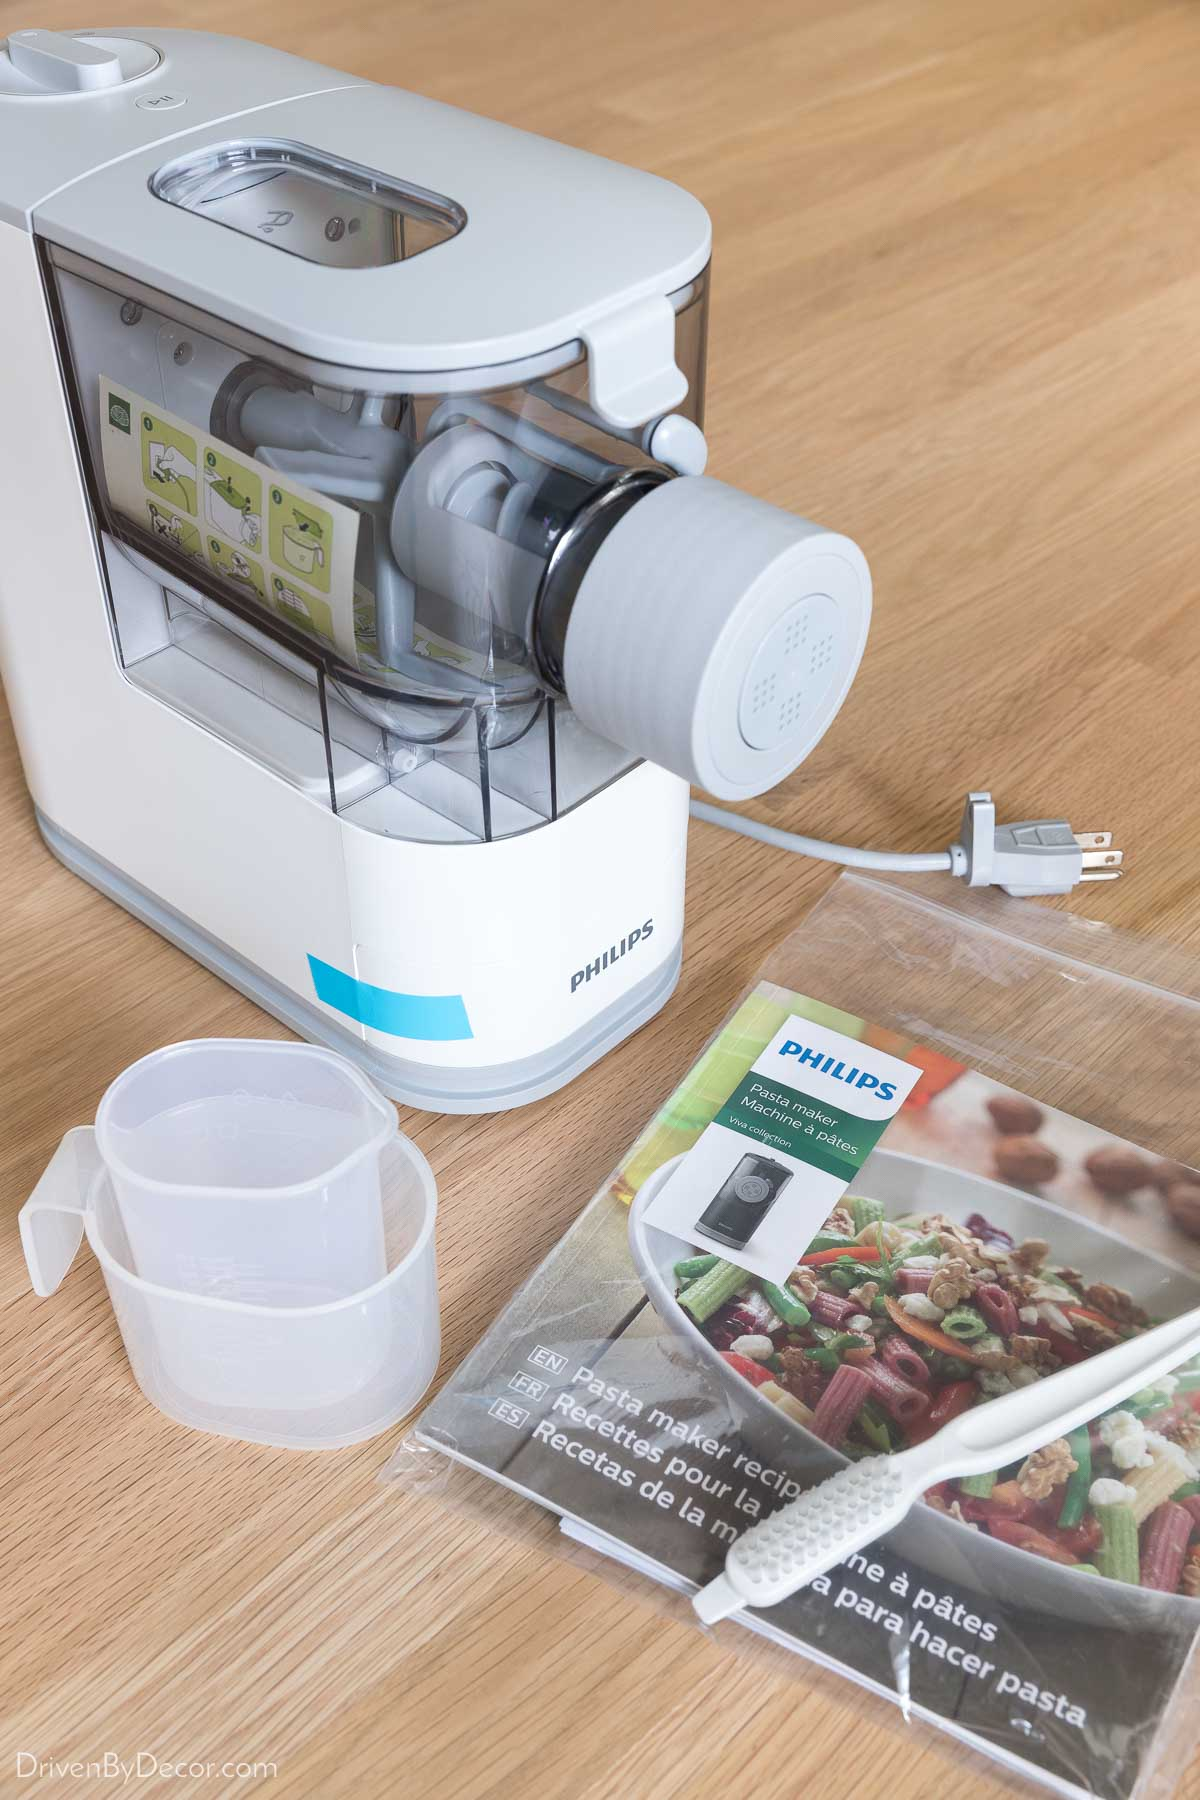 Love saving money by getting these small kitchen appliances as certified refurbished!